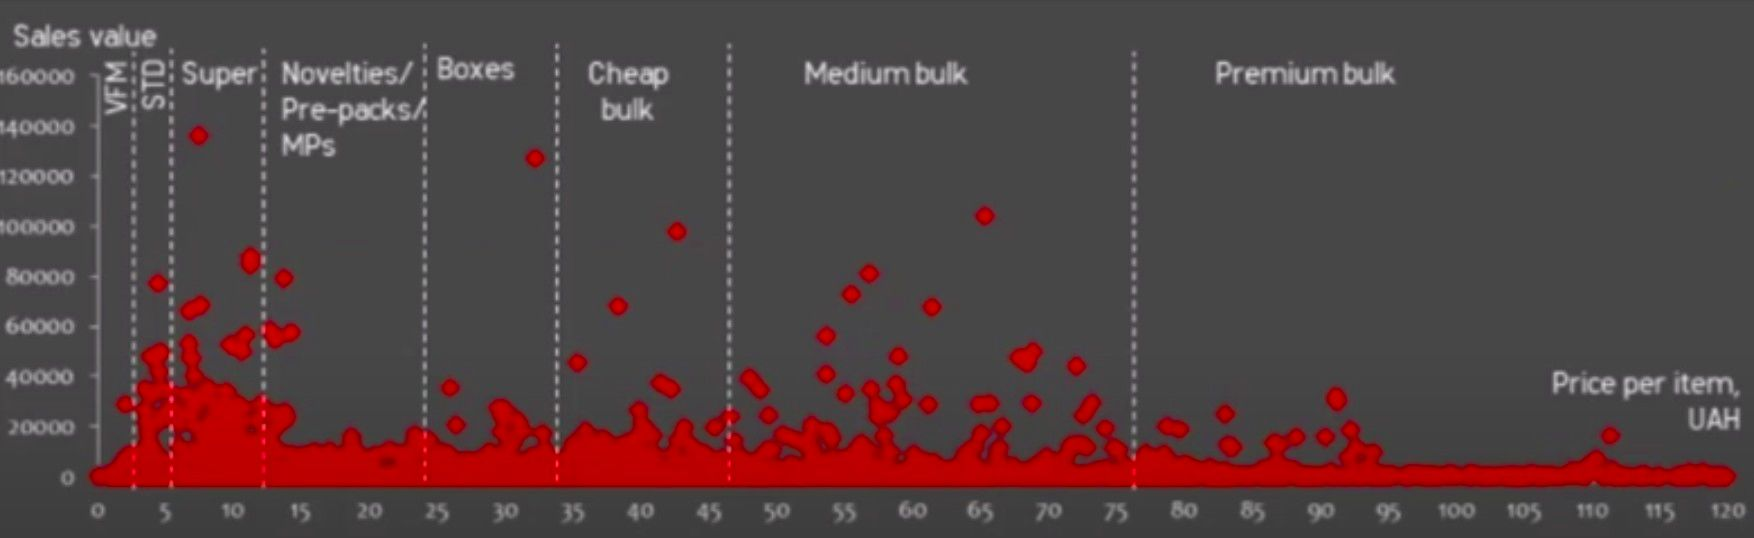 The visual shows the typical pricing thresholds lines separated by 'magic price points'